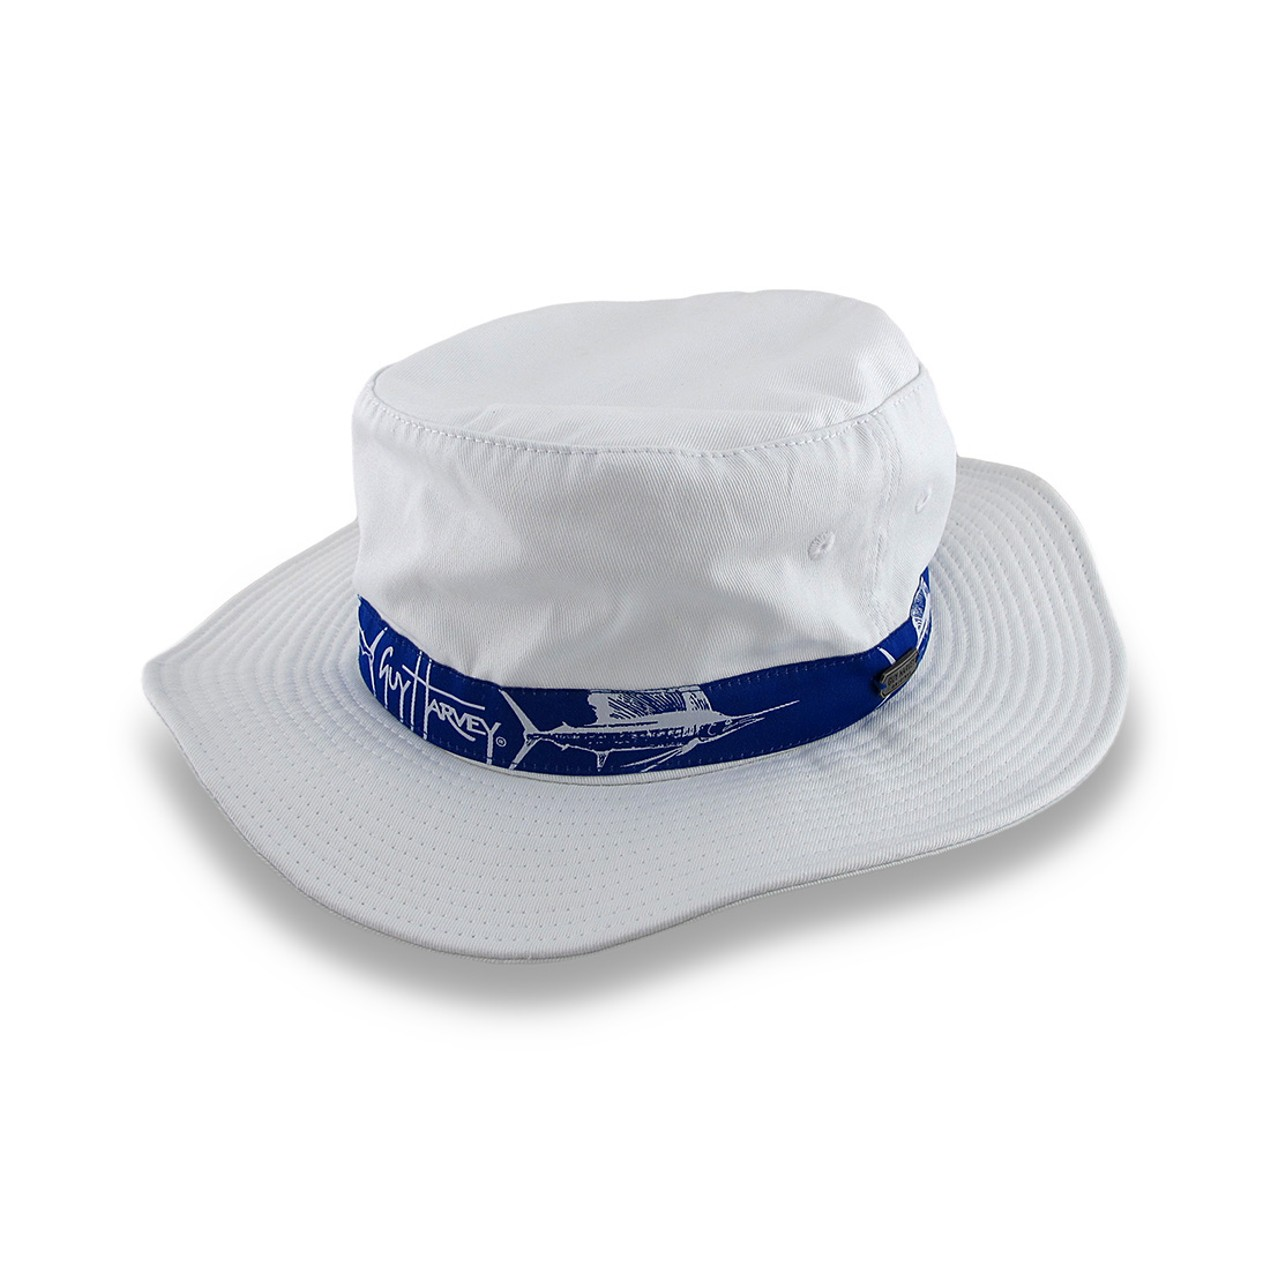 890dead1e Guy Harvey White Booney Hat Blue Sailfish Band Mens Sun Hats - Tanga